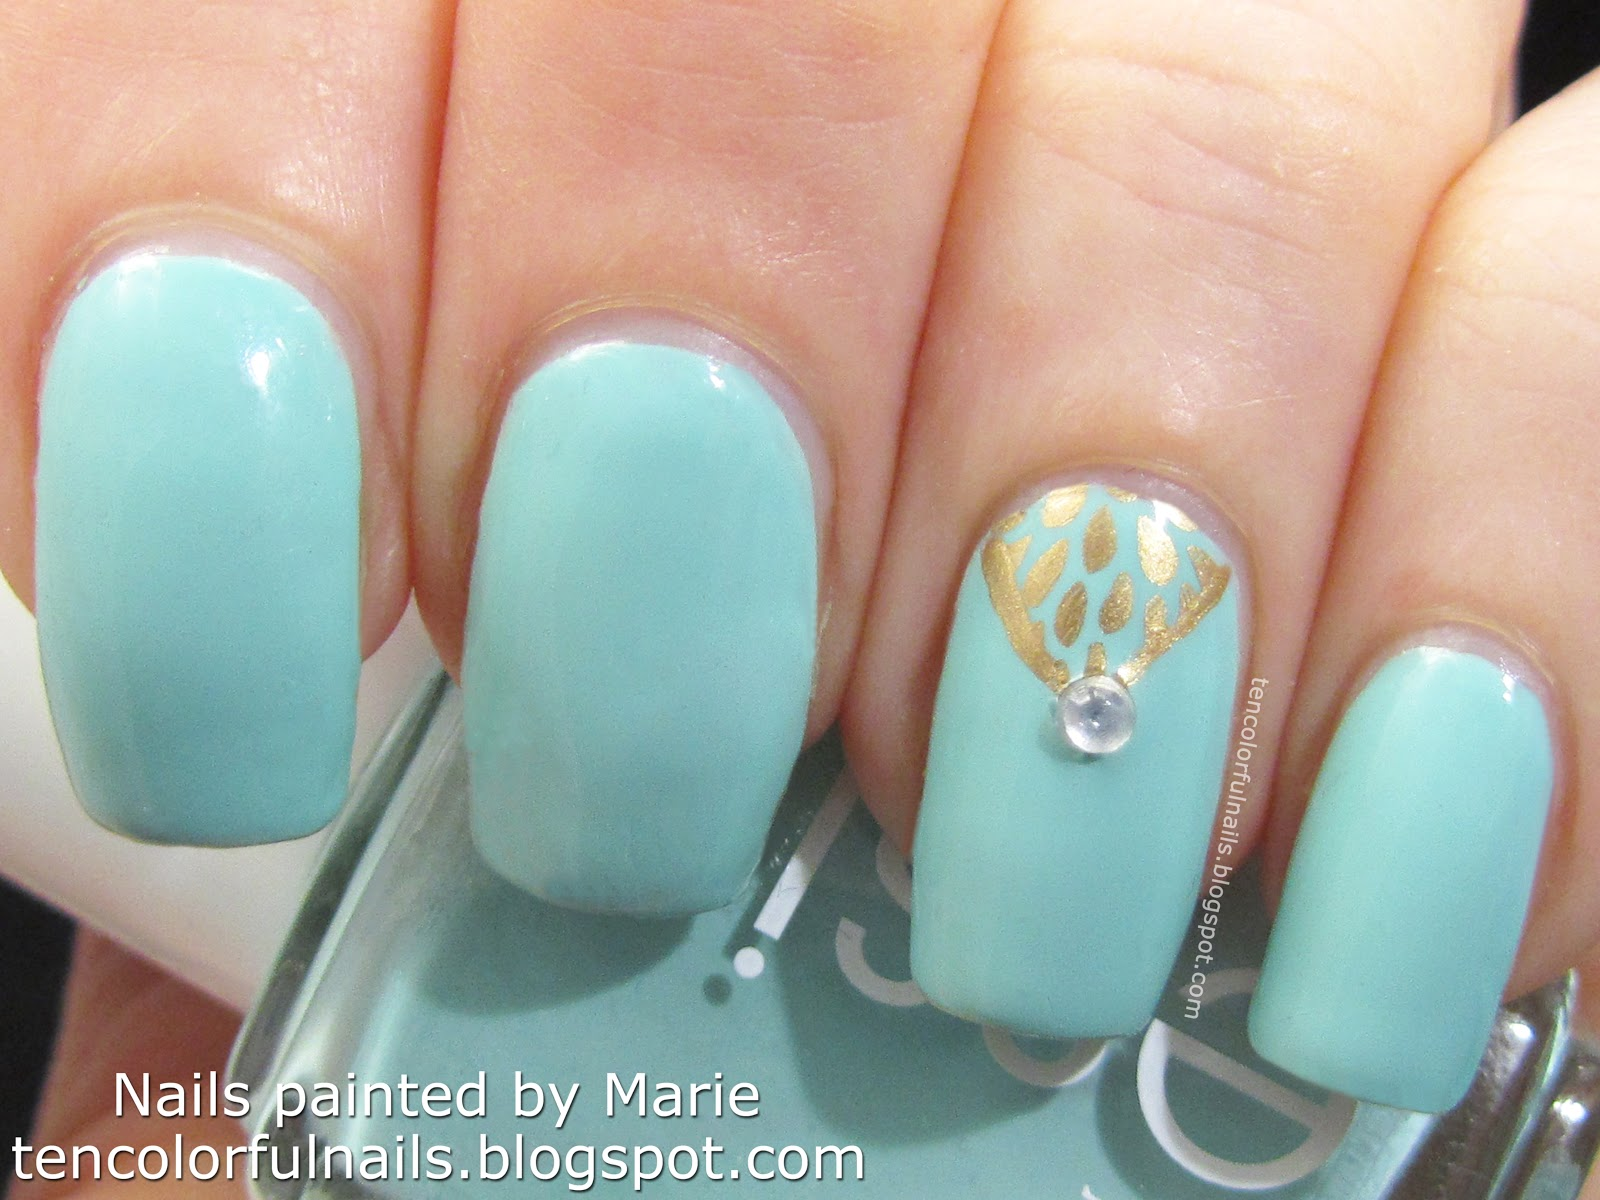 Ten Colorful Nails: Blue Oriental Inspired Nail Fail